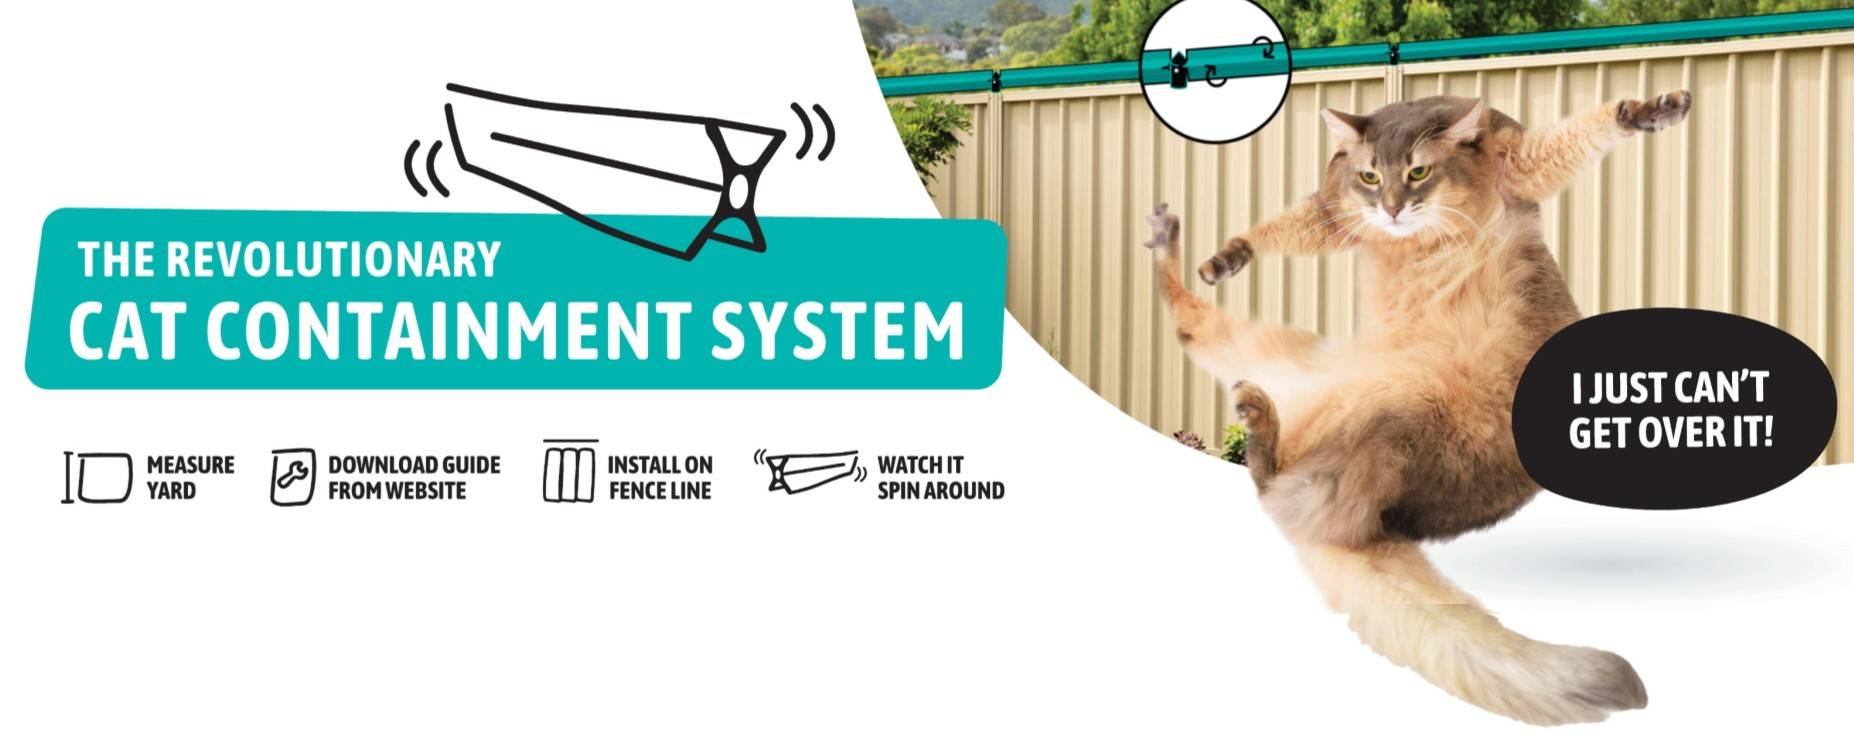 Oscillot cat containment system in simple cat-proof fence kits